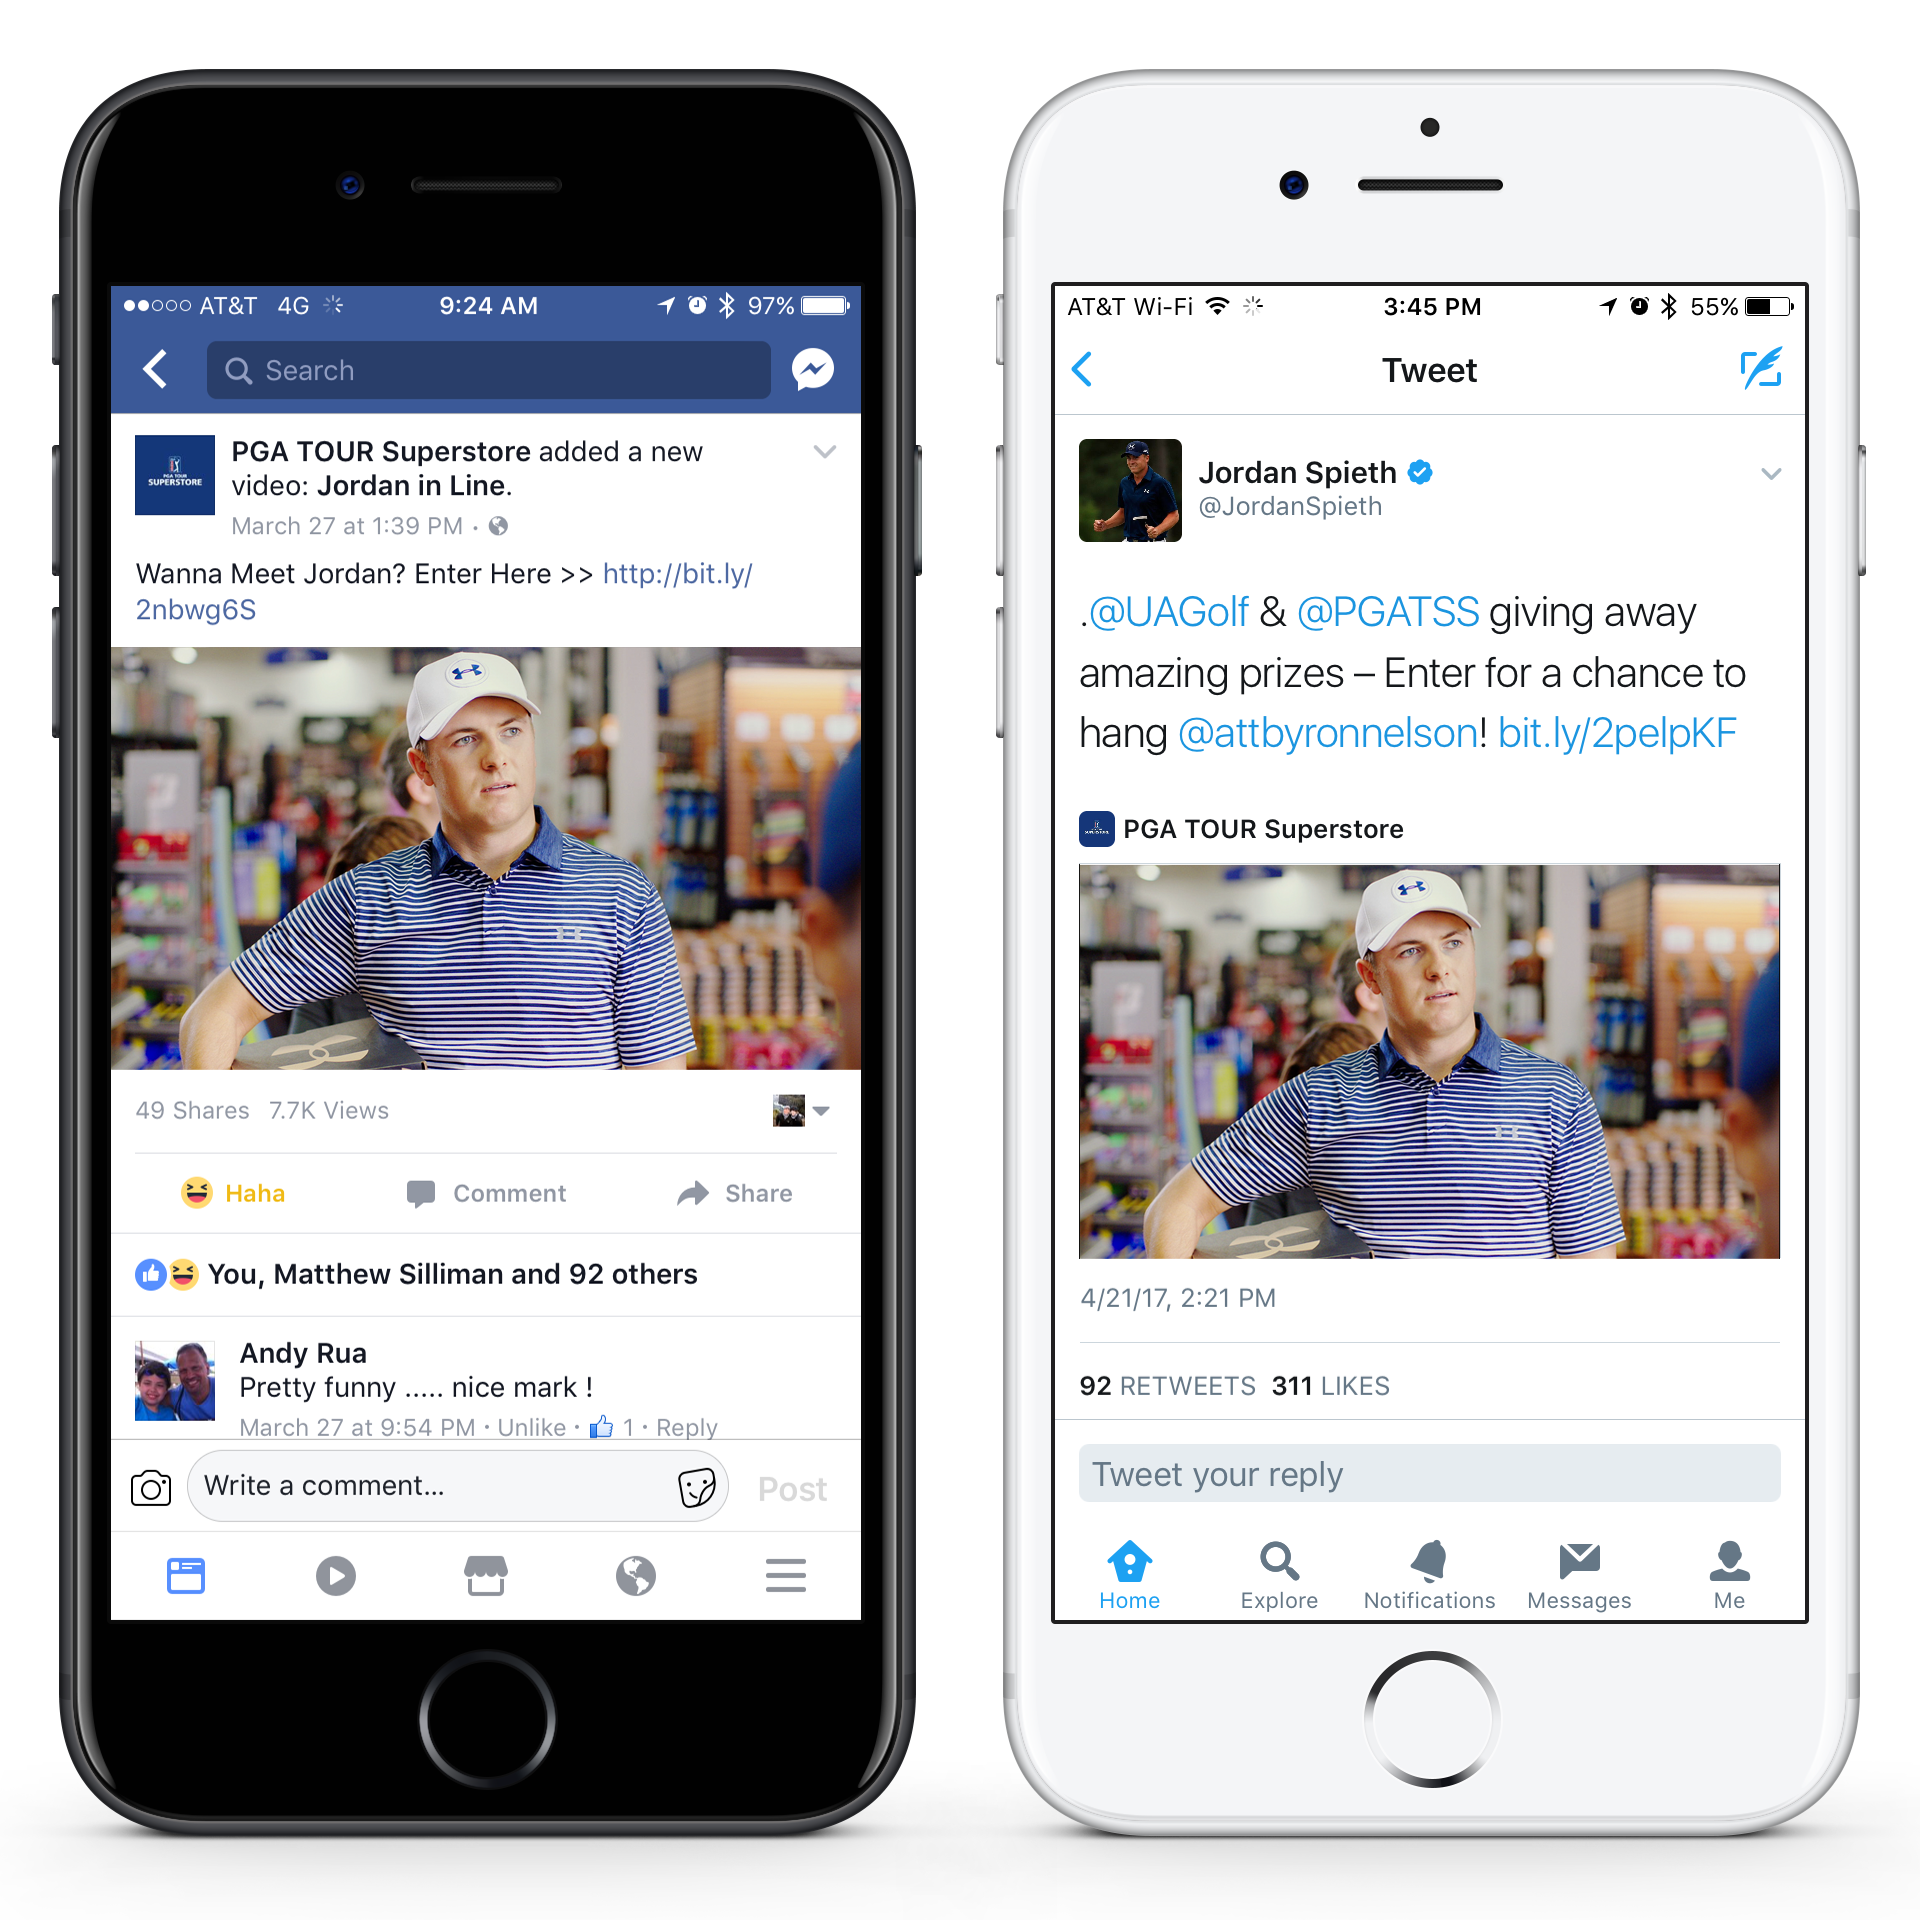 PGA TOUR Superstore, Under Armour and Jordan Spieth social posts help spread the word about the online sweepstakes.